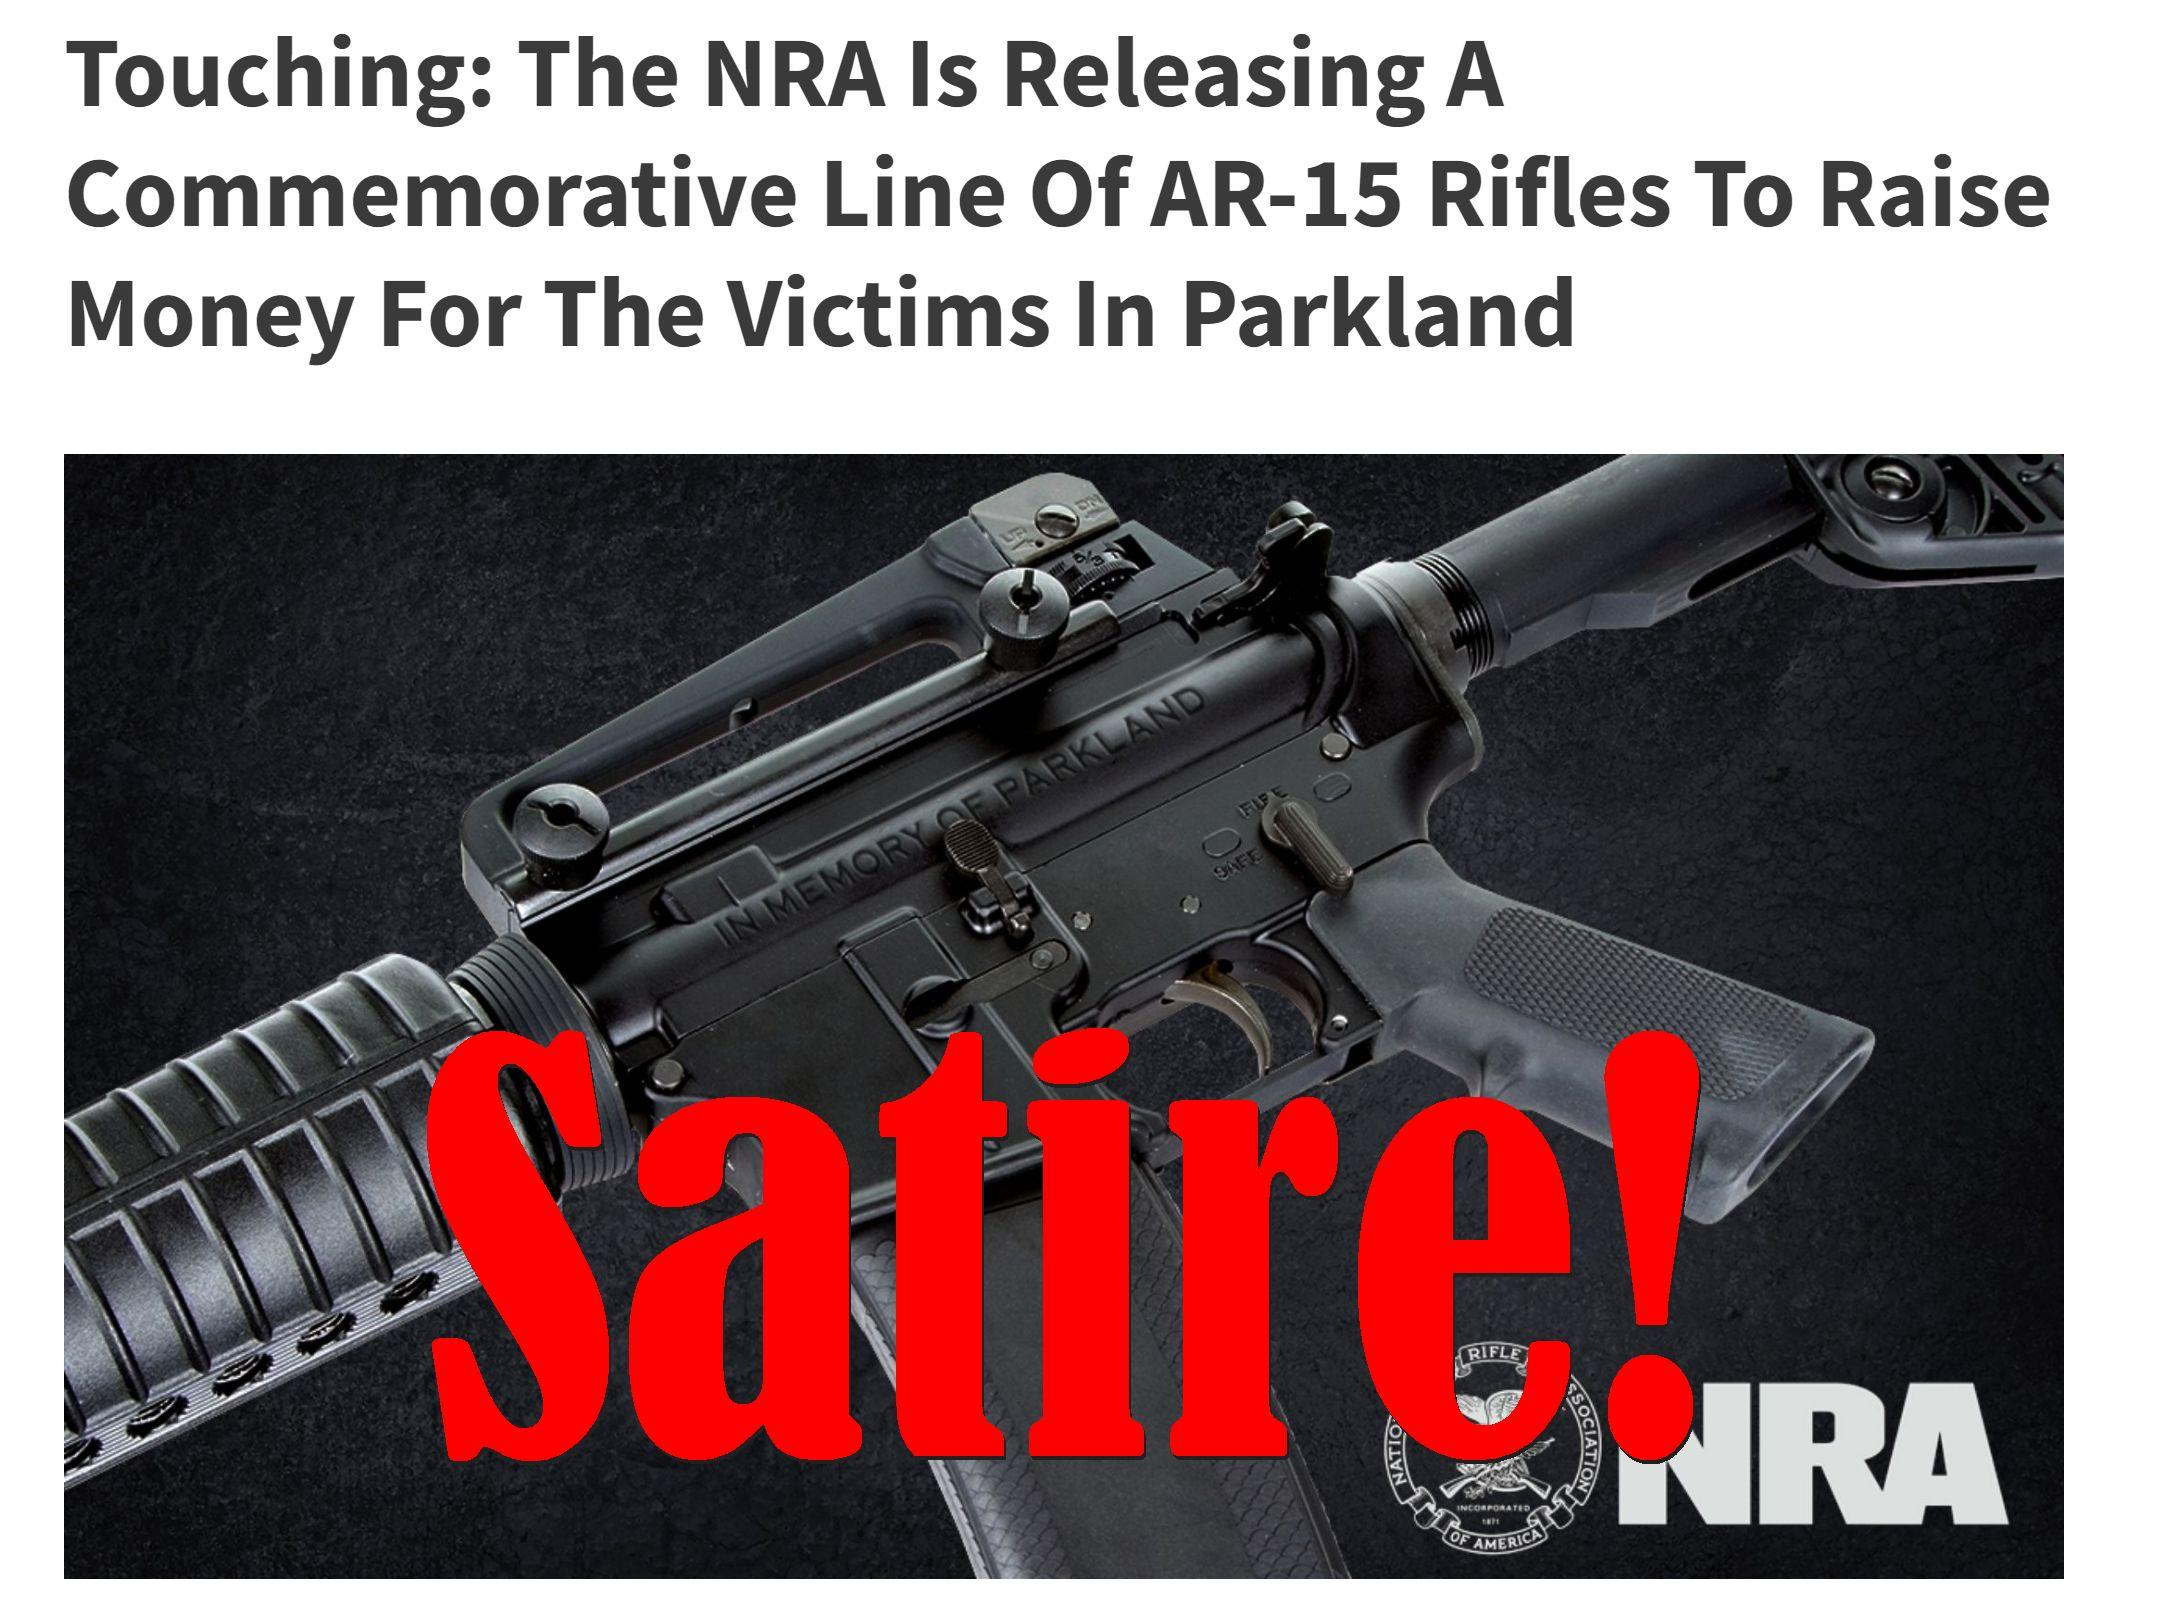 Fake News: NRA NOT Releasing Commemorative Line Of AR-15 Rifles To Raise Money For Parkland Victims